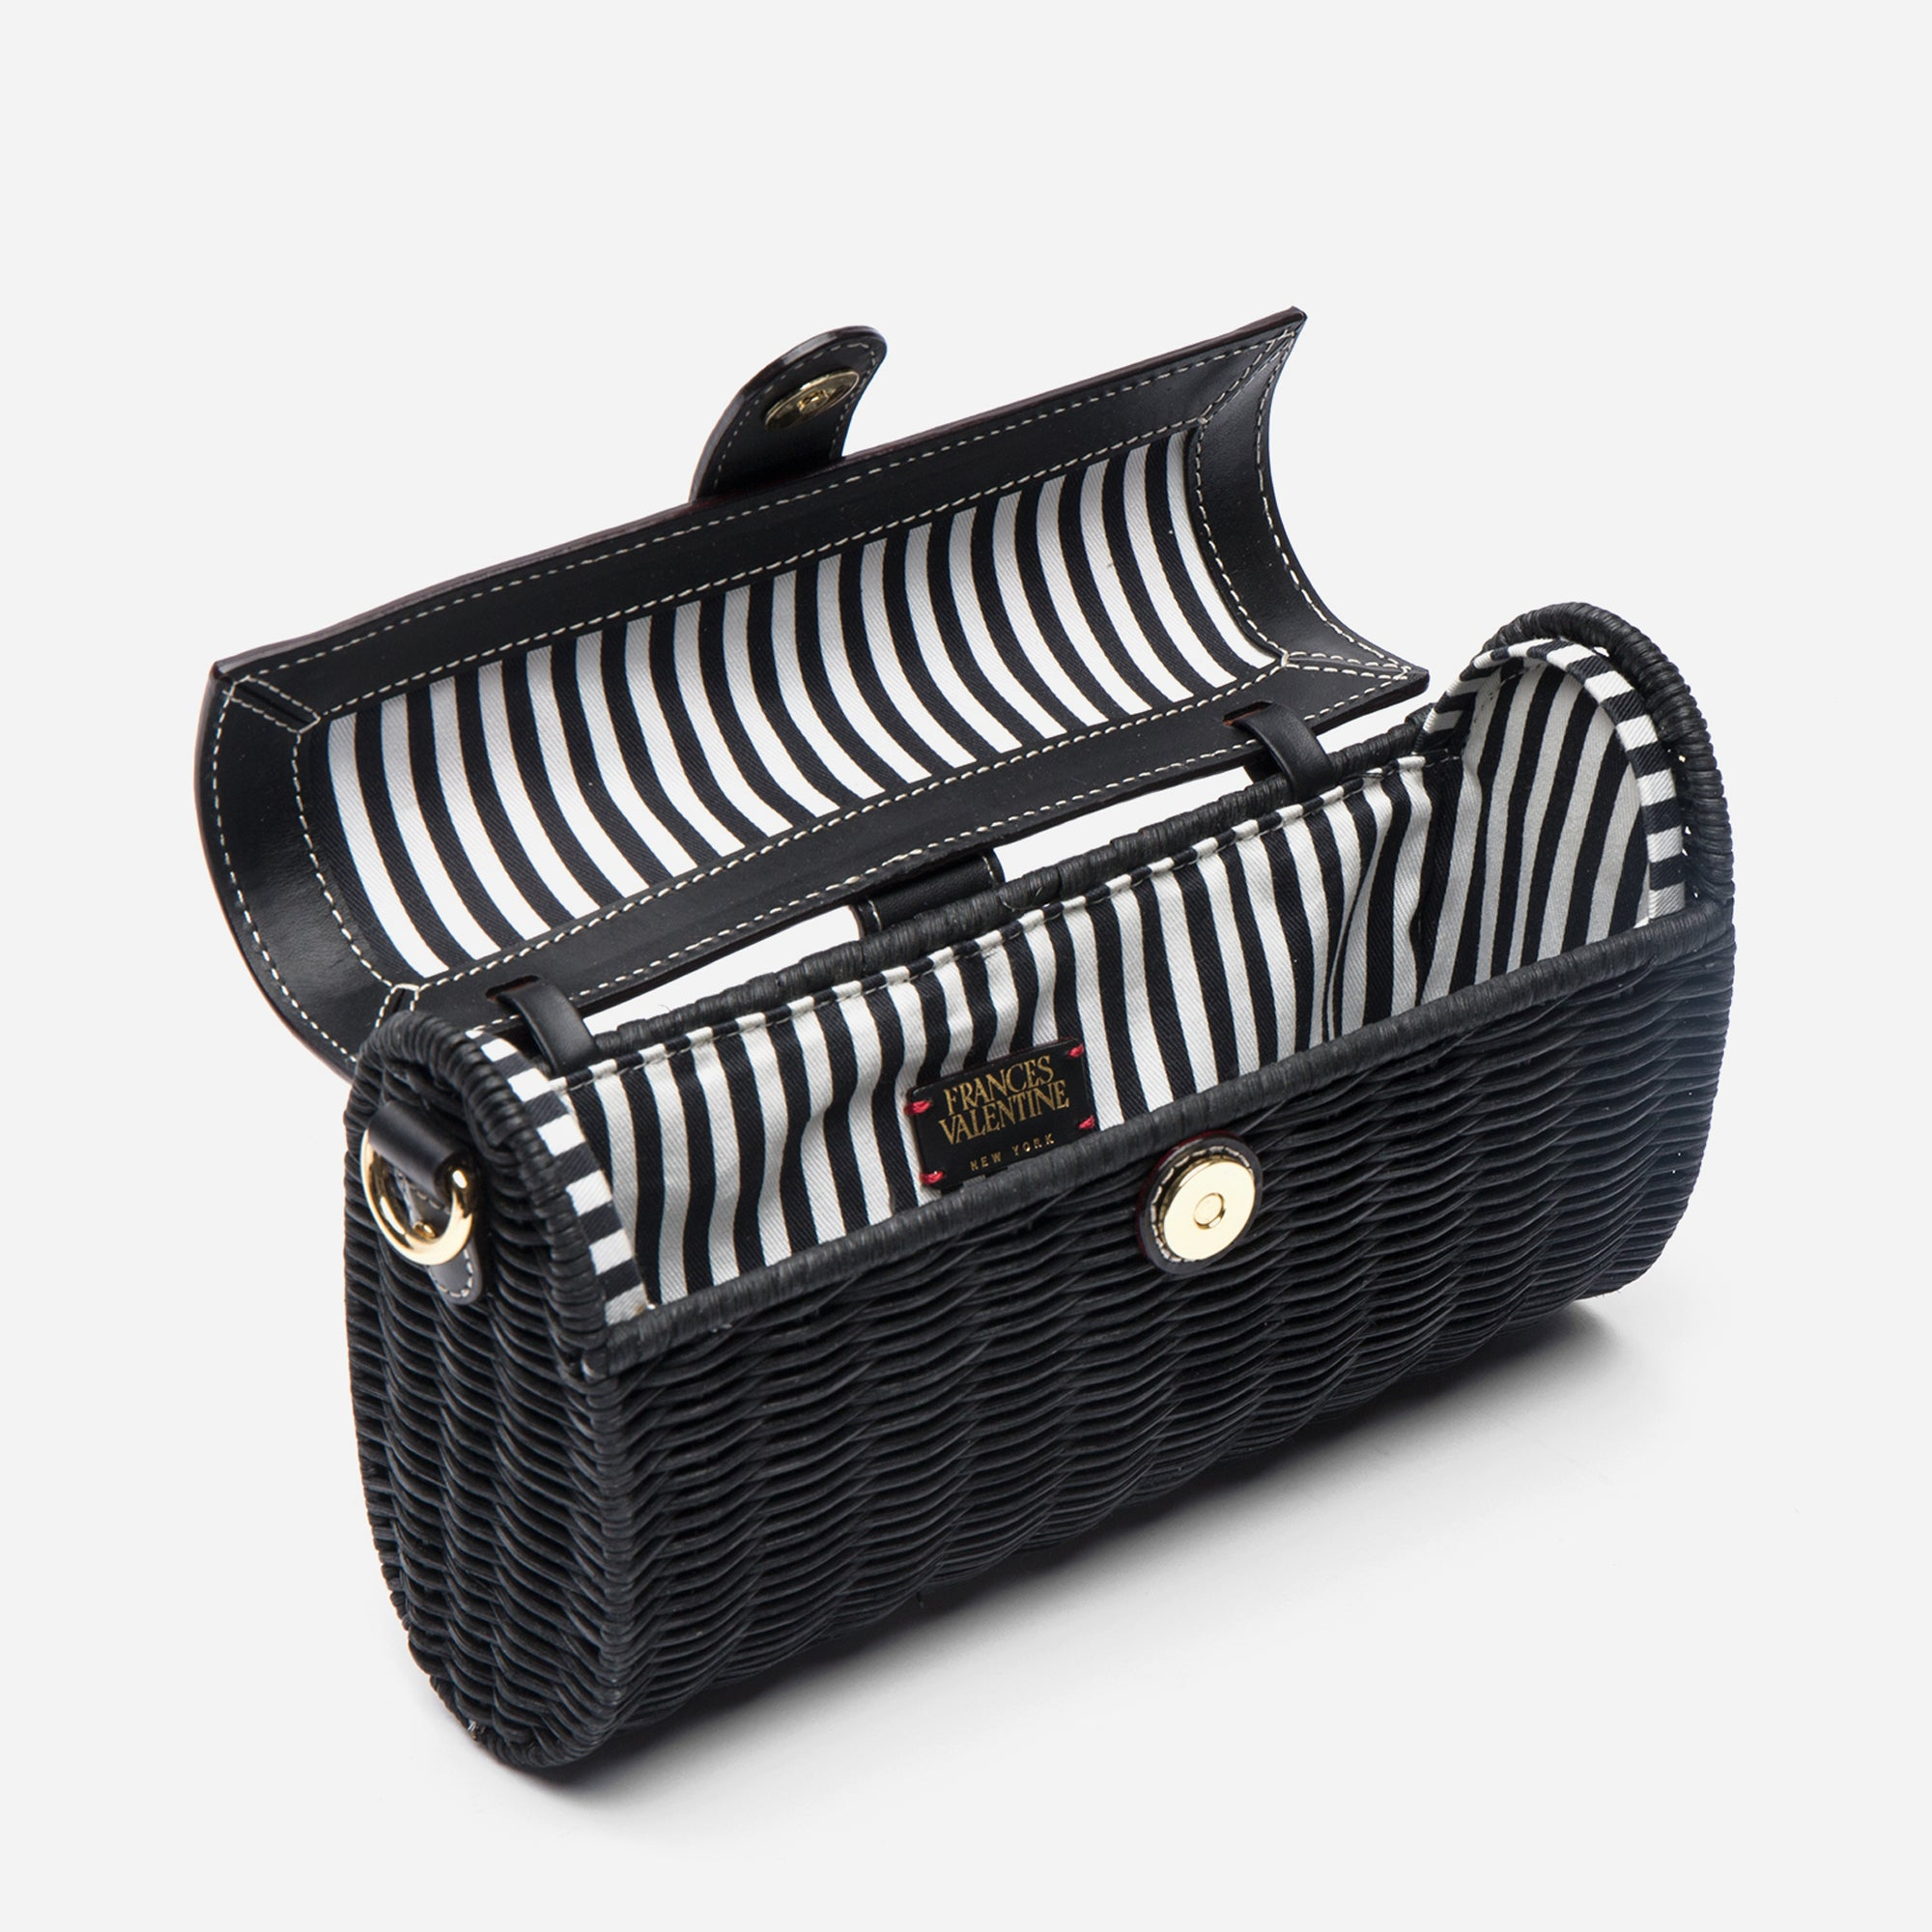 Betsy Wicker Basket Bag Black